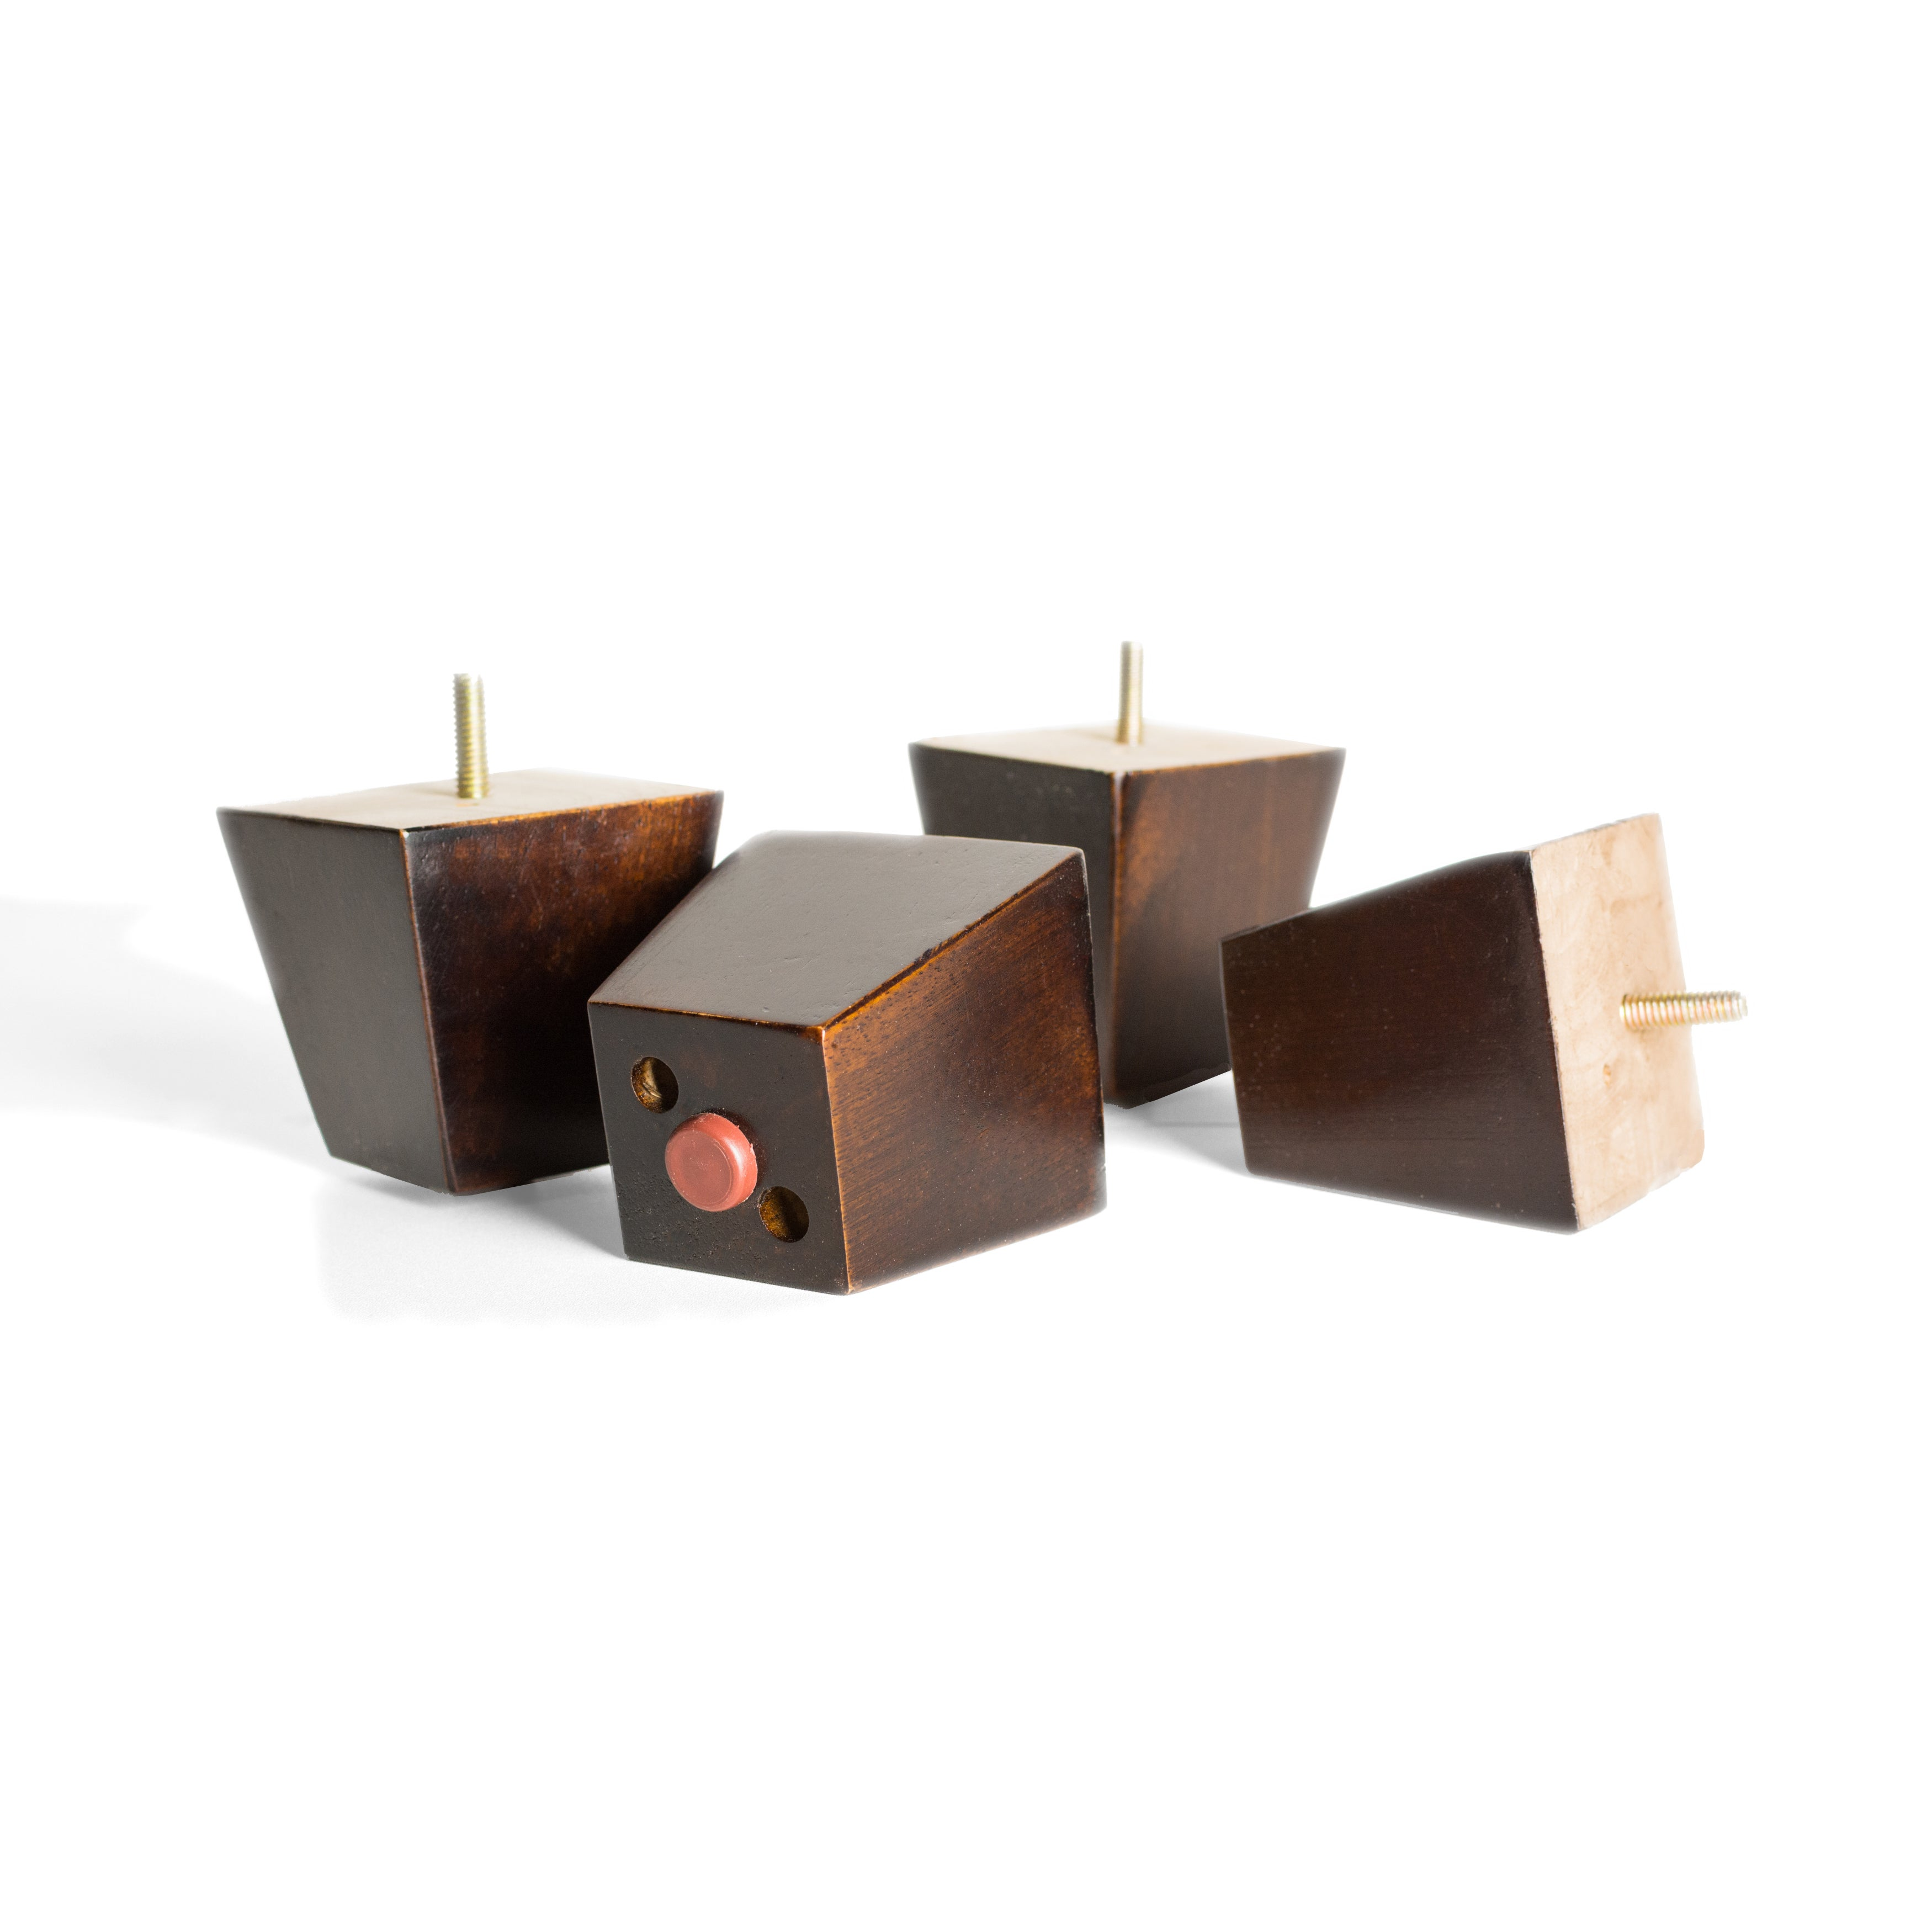 MJL Furniture Designs Small 3 1/4 Inch Tall Block Wooden Furniture Feet  (Set Of 4)   Free Shipping Today   Overstock   20695052